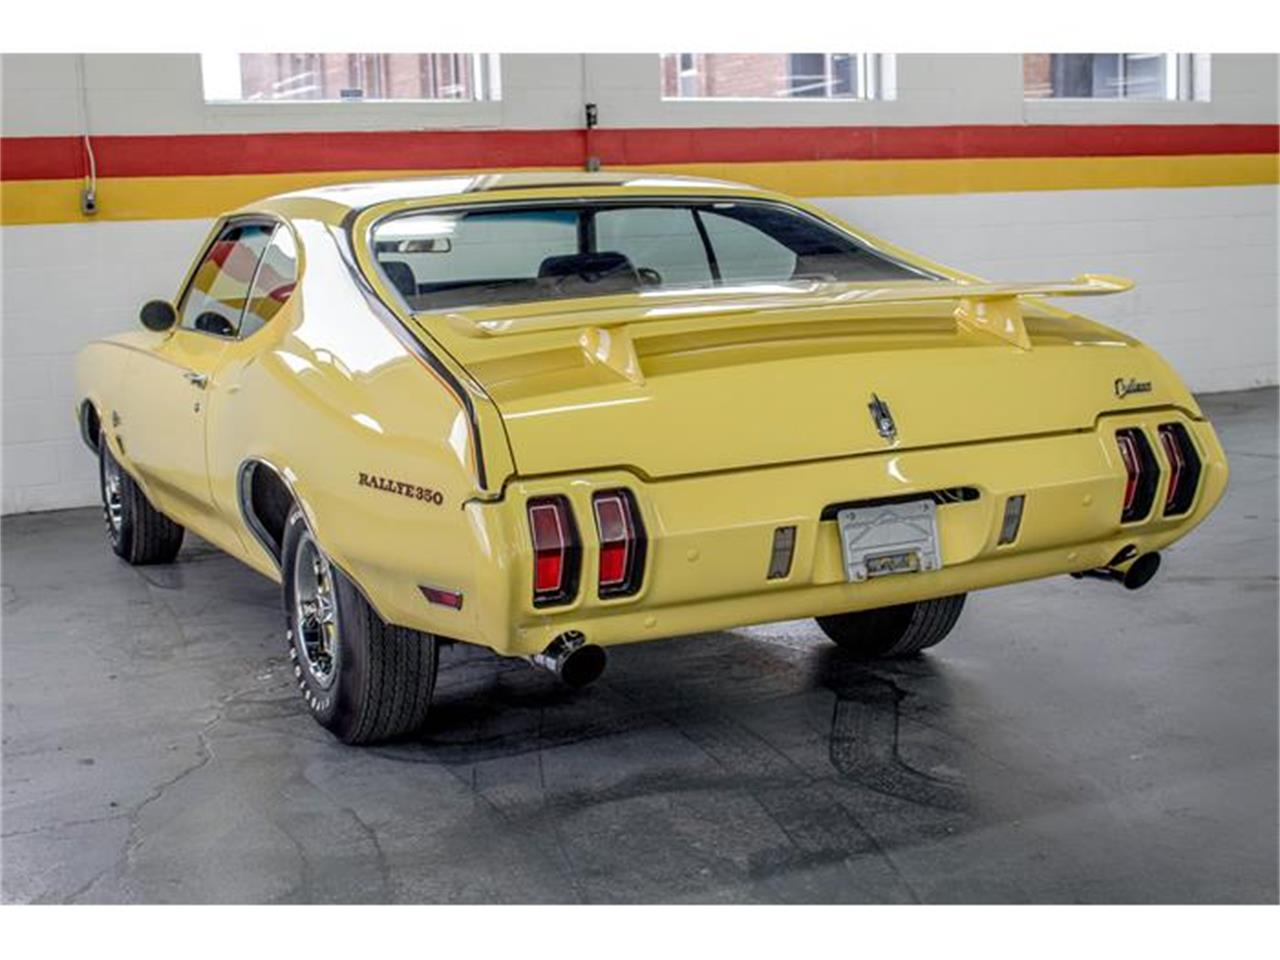 Large Picture of '70 Rallye 350 located in Quebec - $31,990.00 Offered by John Scotti Classic Cars - GE80